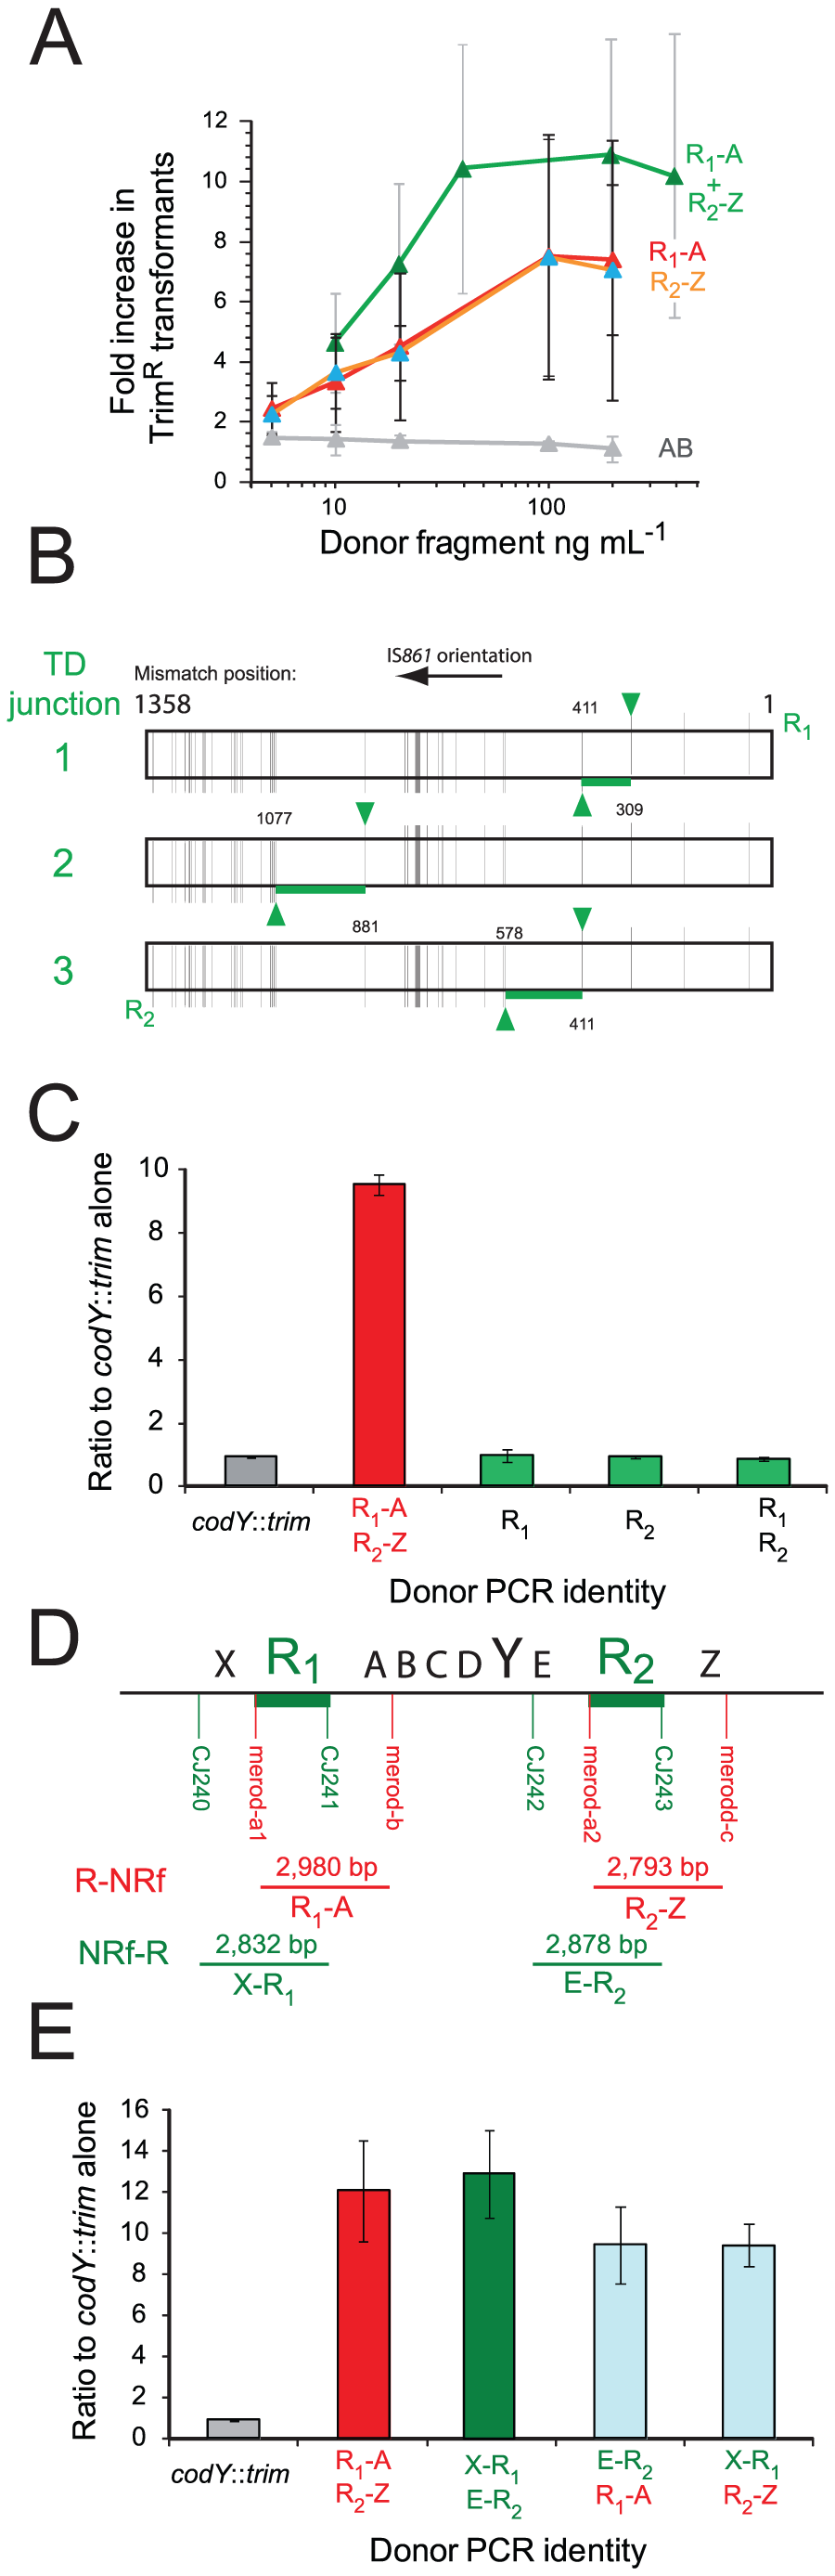 R-NRf donor fragments promote merodiploid formation, allowing survival of otherwise lethal <i>codY</i>::<i>trim</i> transformants.